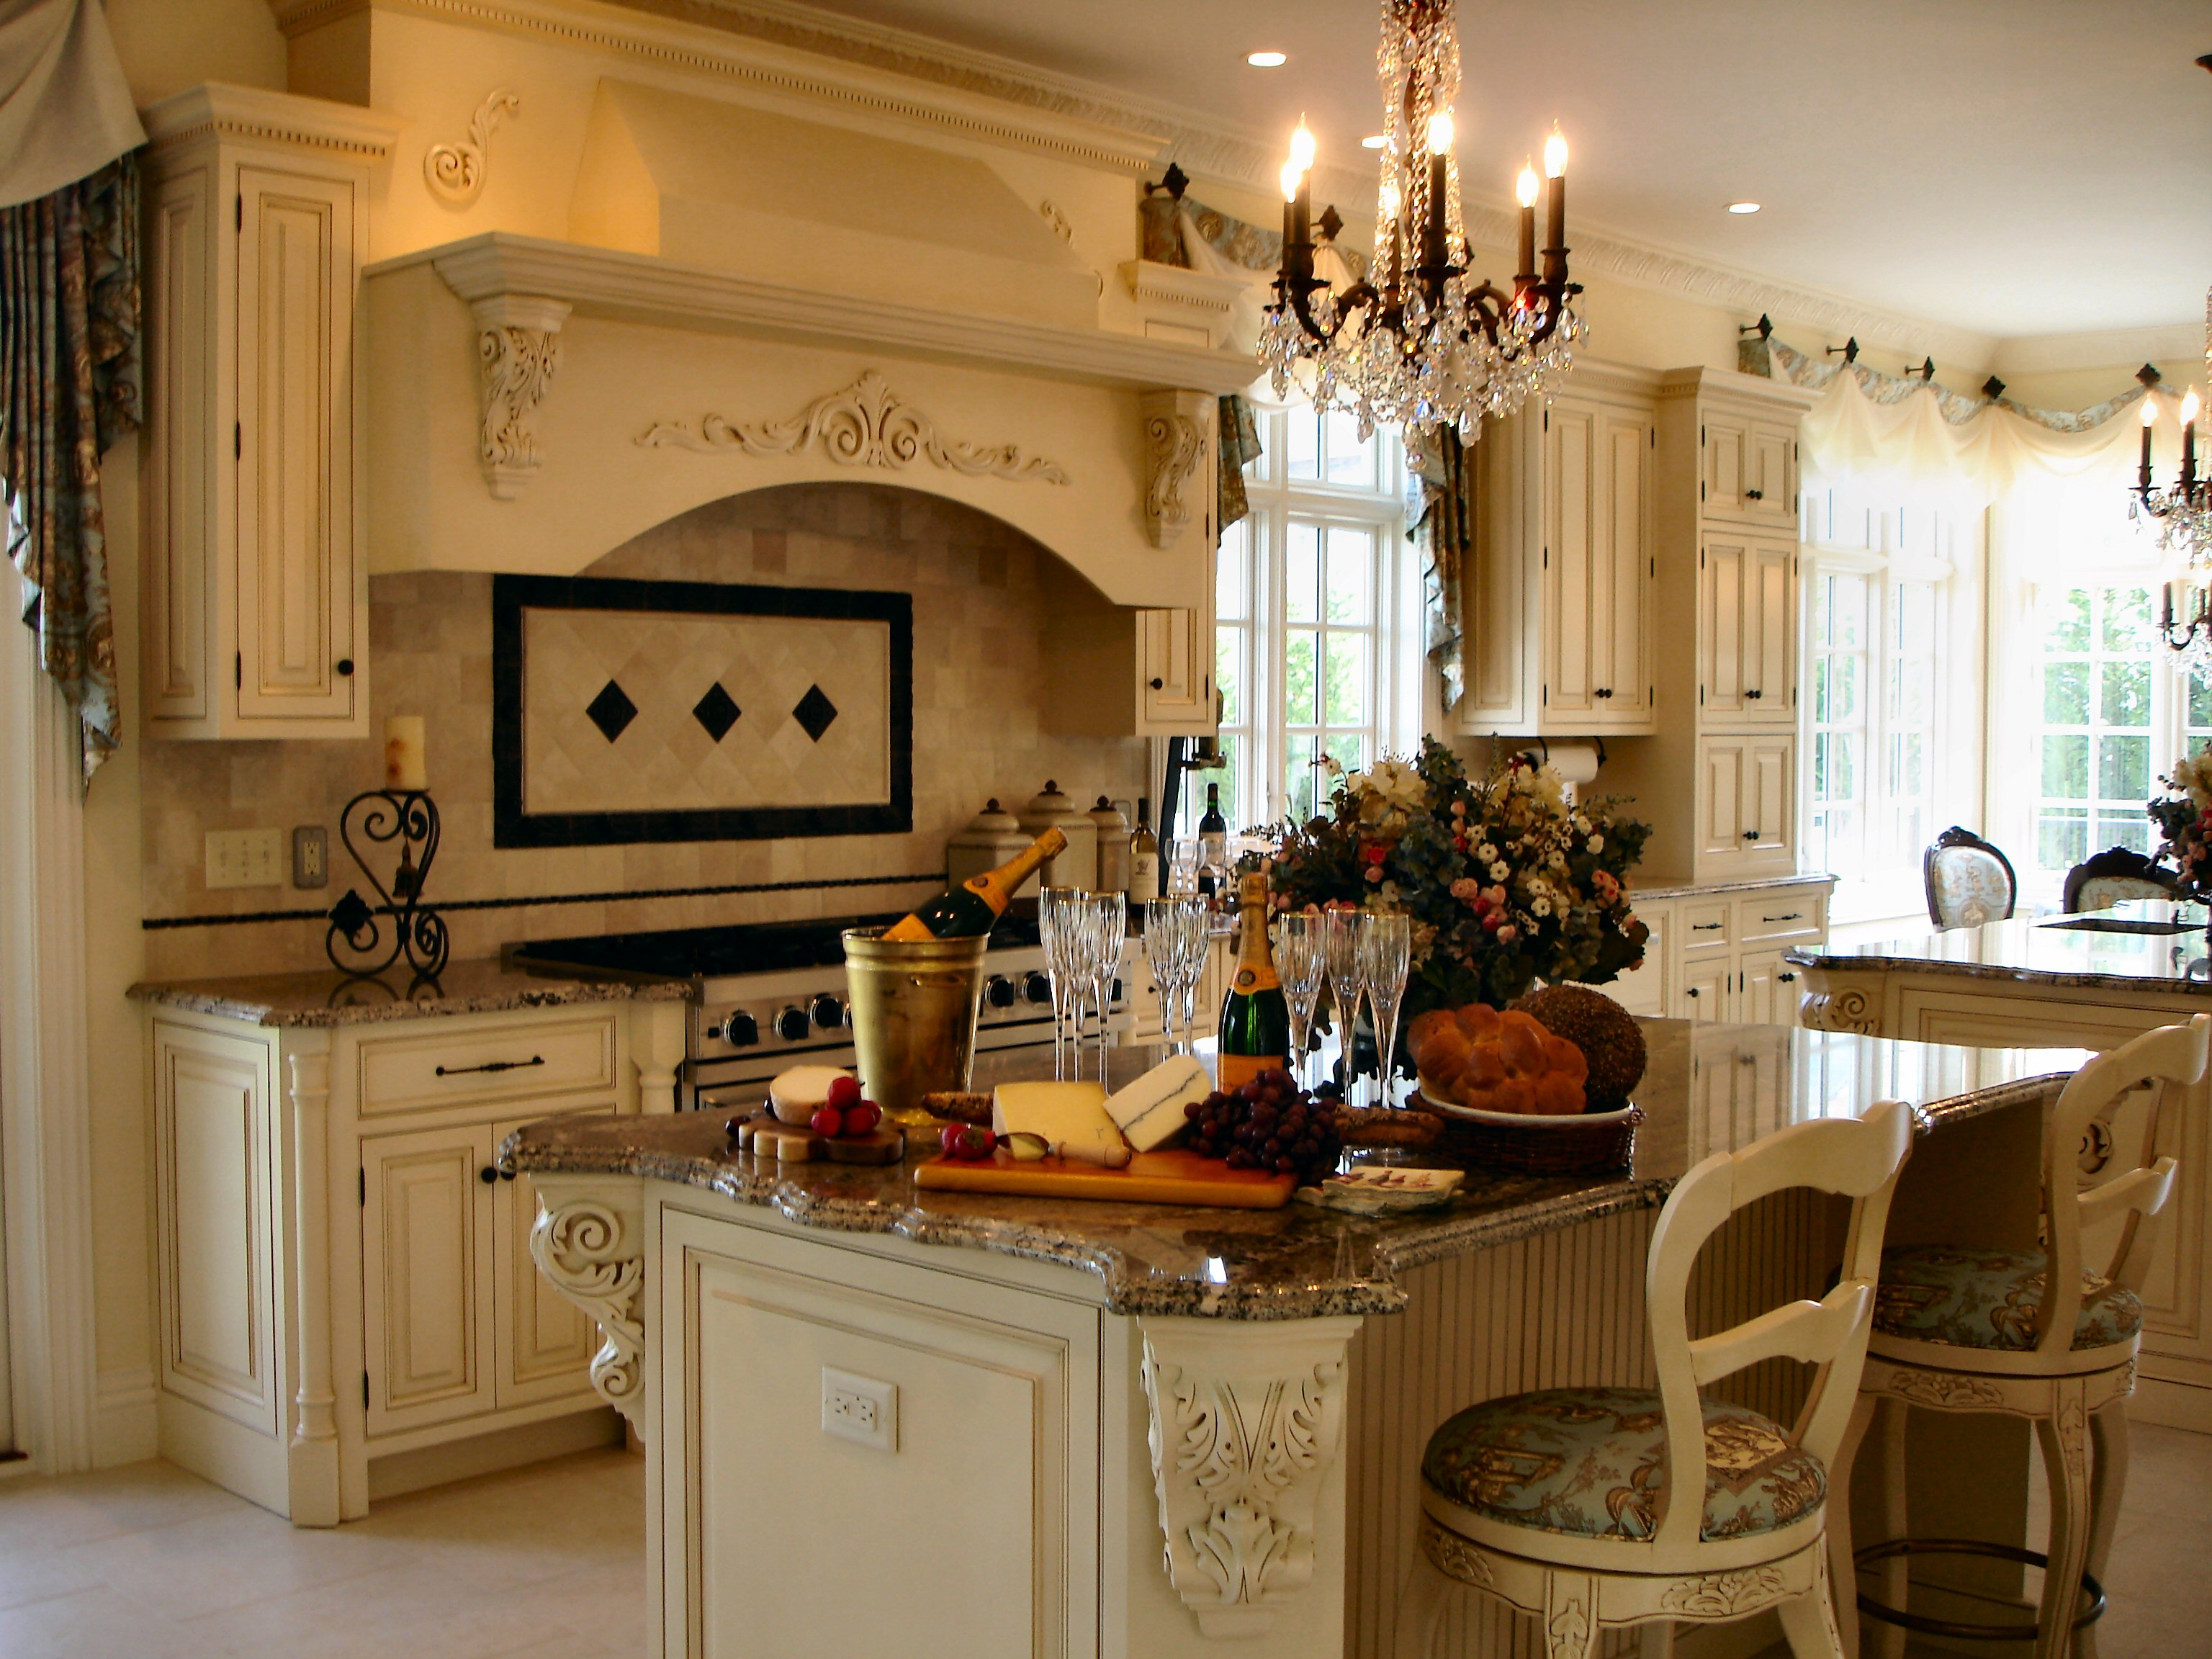 south jersey kitchen remodeling replacement cabinet doors glass front nj design build planners our homeowners truly love the experience because we actually make process fun